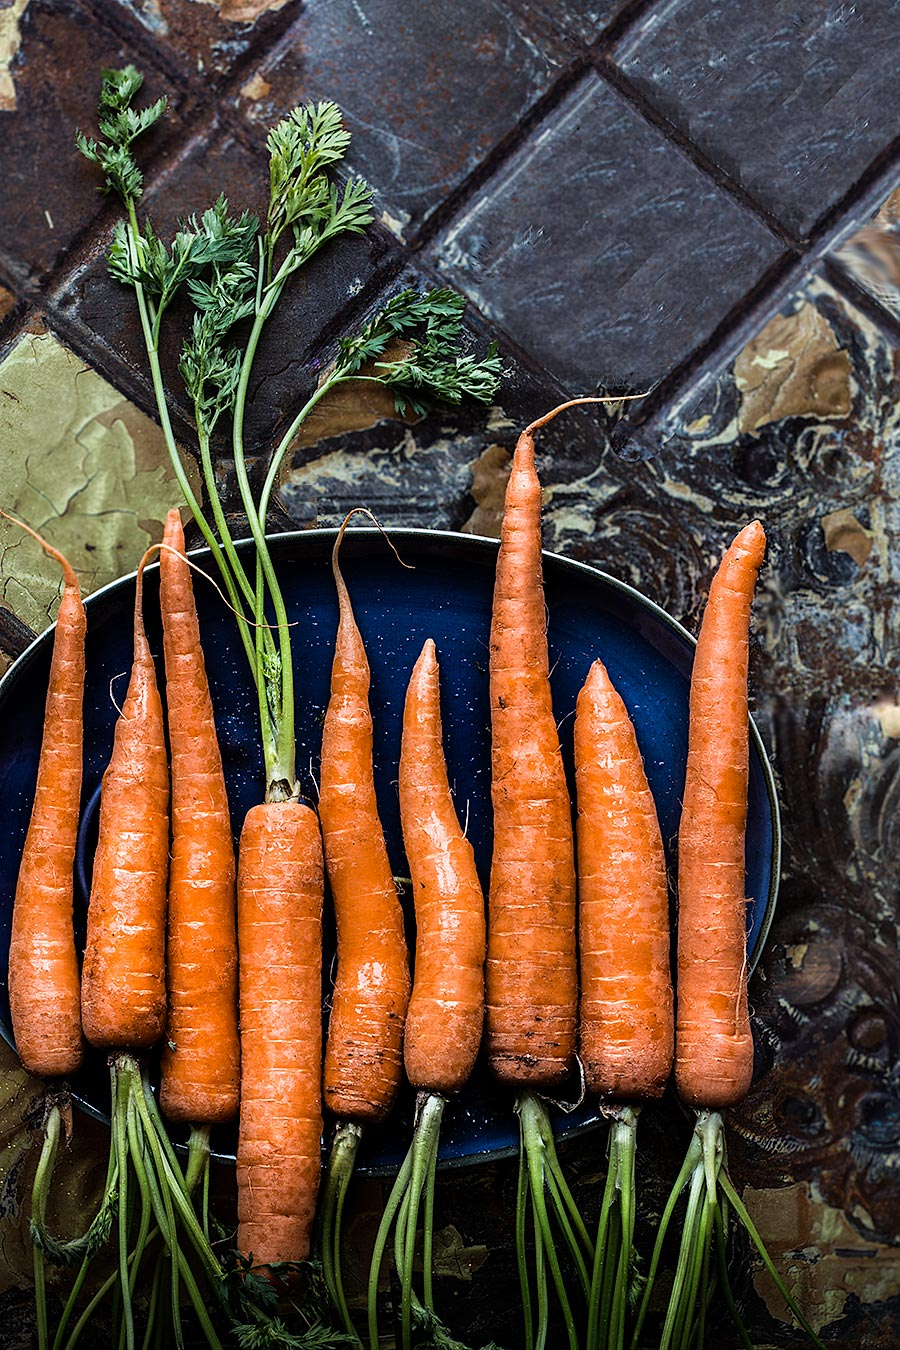 Carrots by Laura Domingo